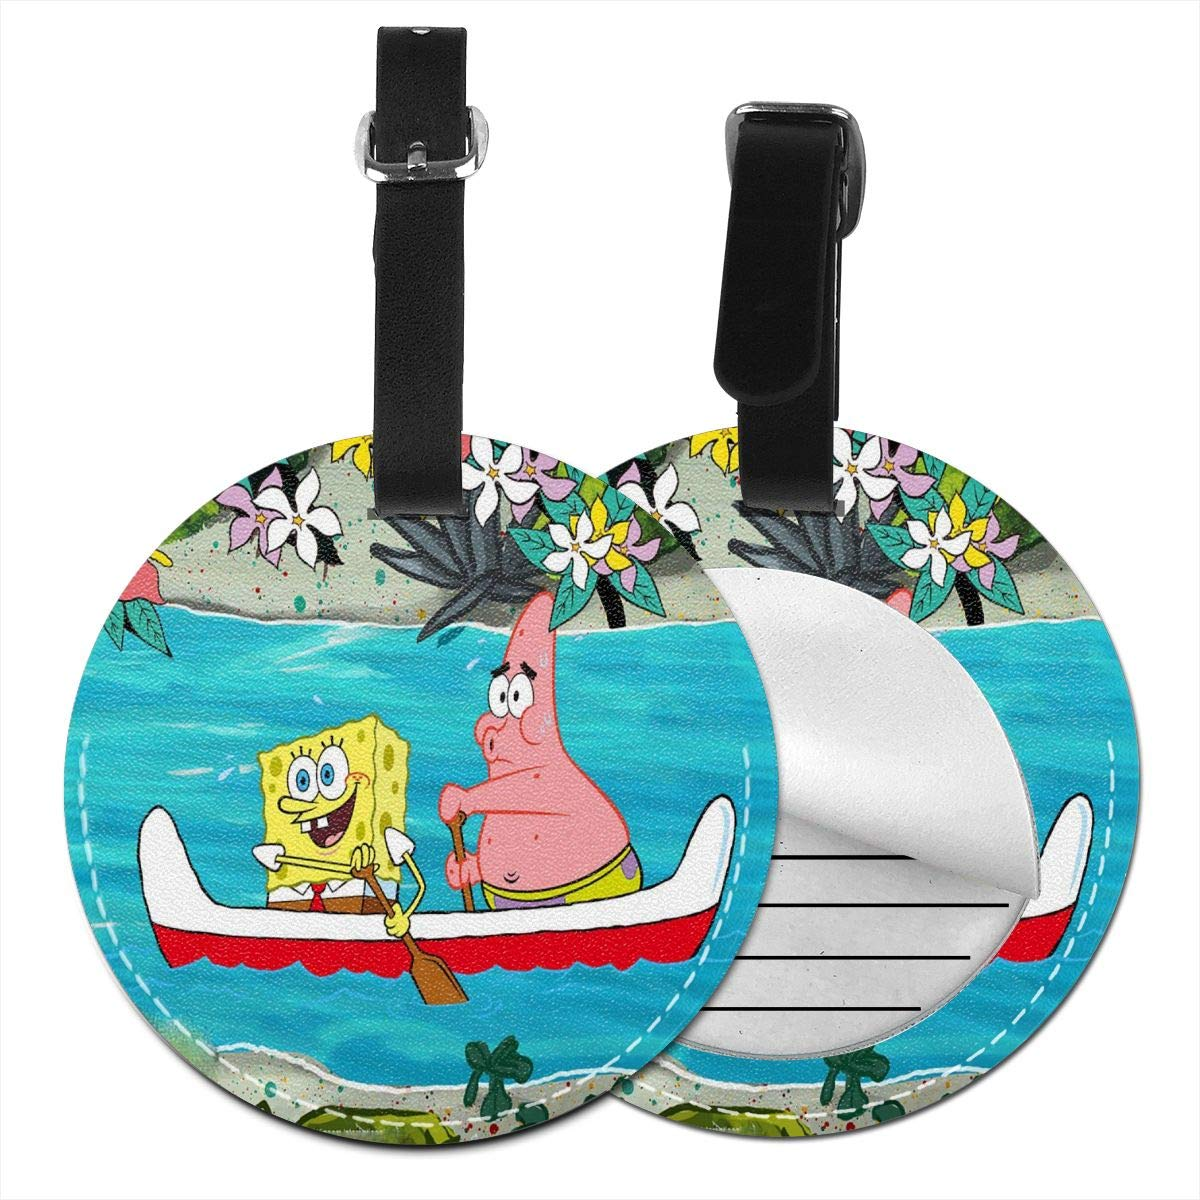 WEIBING Round Luggage Tag5021d6ae5dc22 Luggage Tags Suitcase Labels Bag Travel Accessories